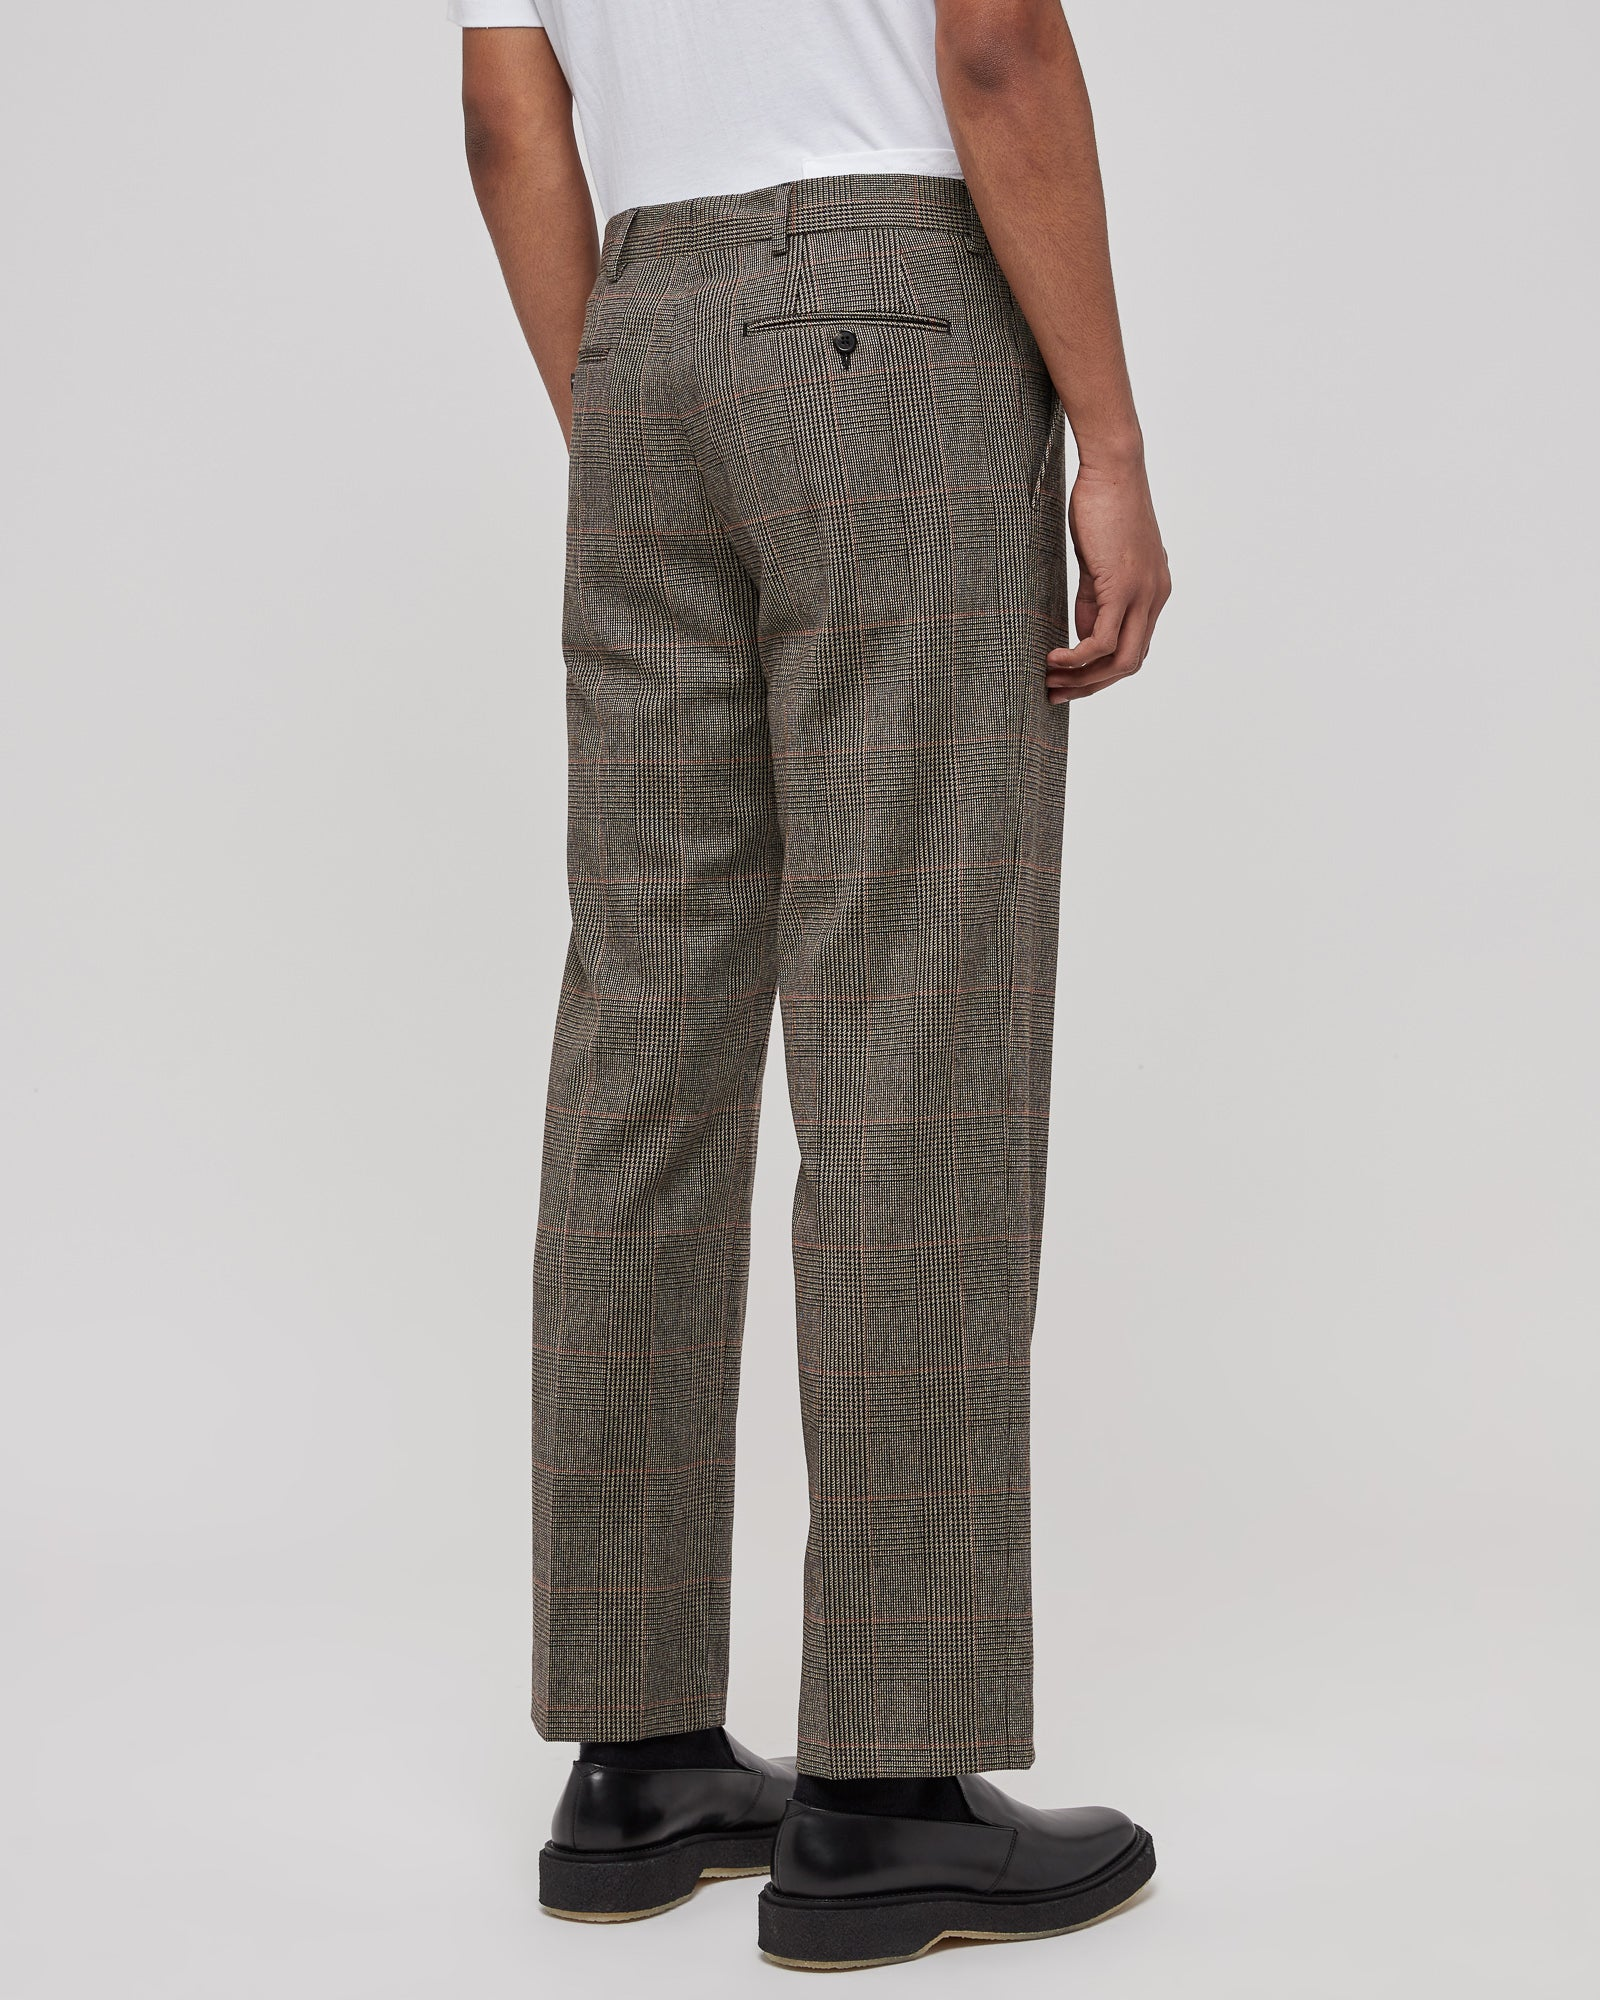 Pennel Pants in Brown